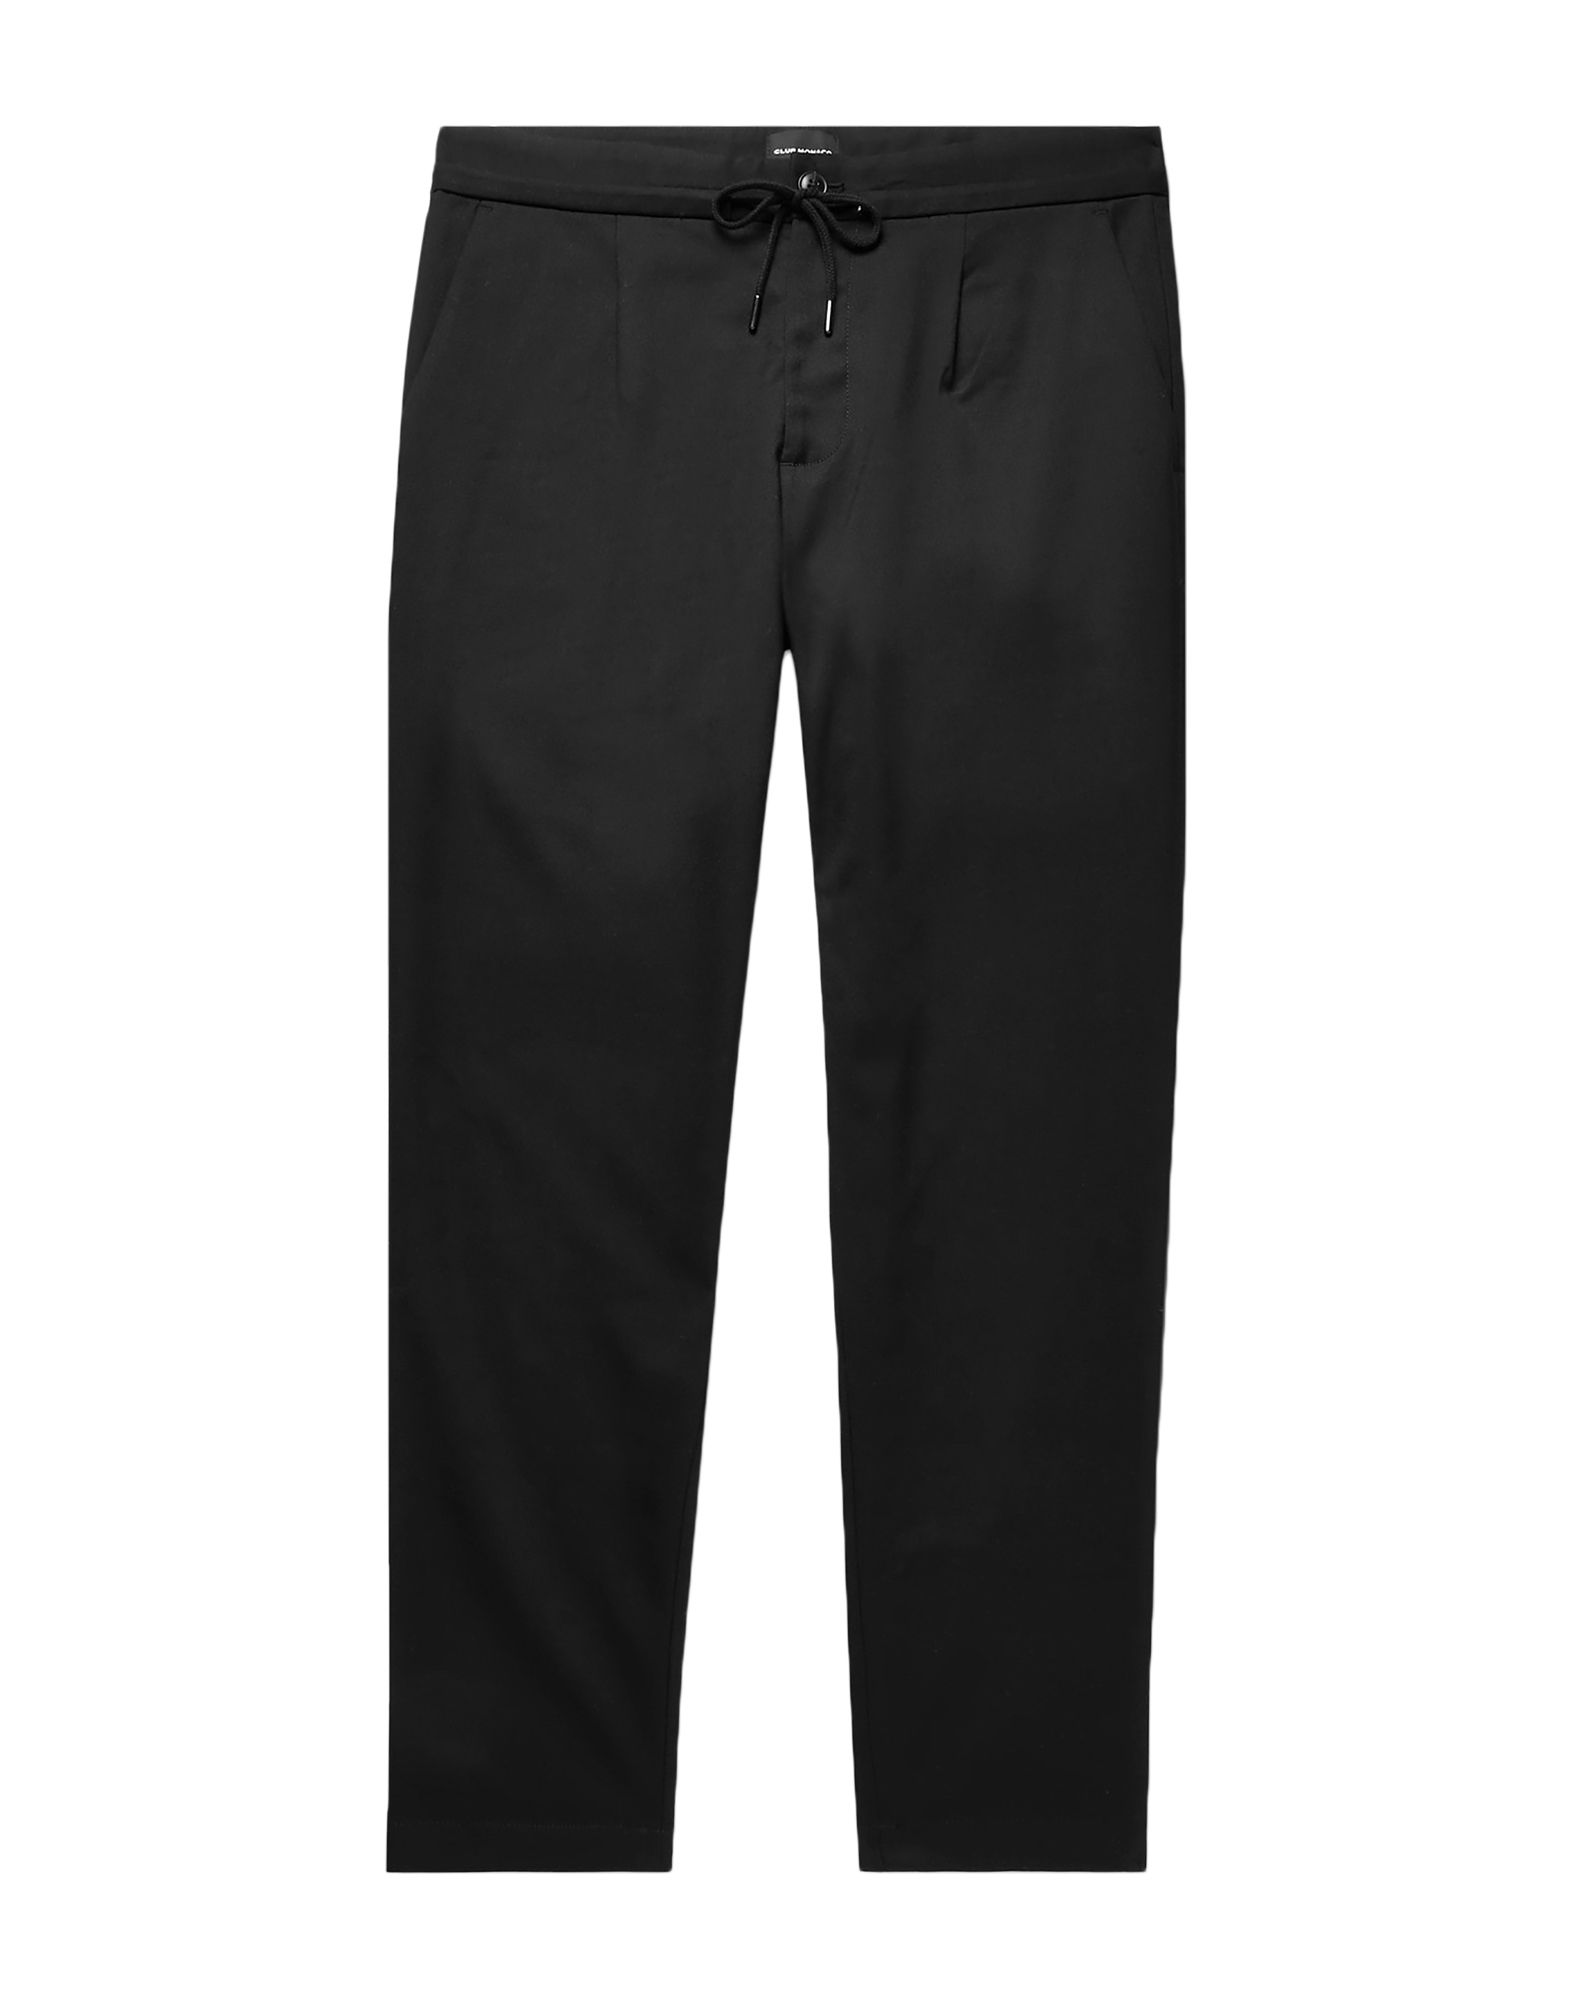 CLUB MONACO Casual pants. twill, solid color, regular fit, tapered leg, high waisted, button, zip, no appliqués, multipockets, stretch. 64% Polyester, 34% Viscose, 2% Elastane